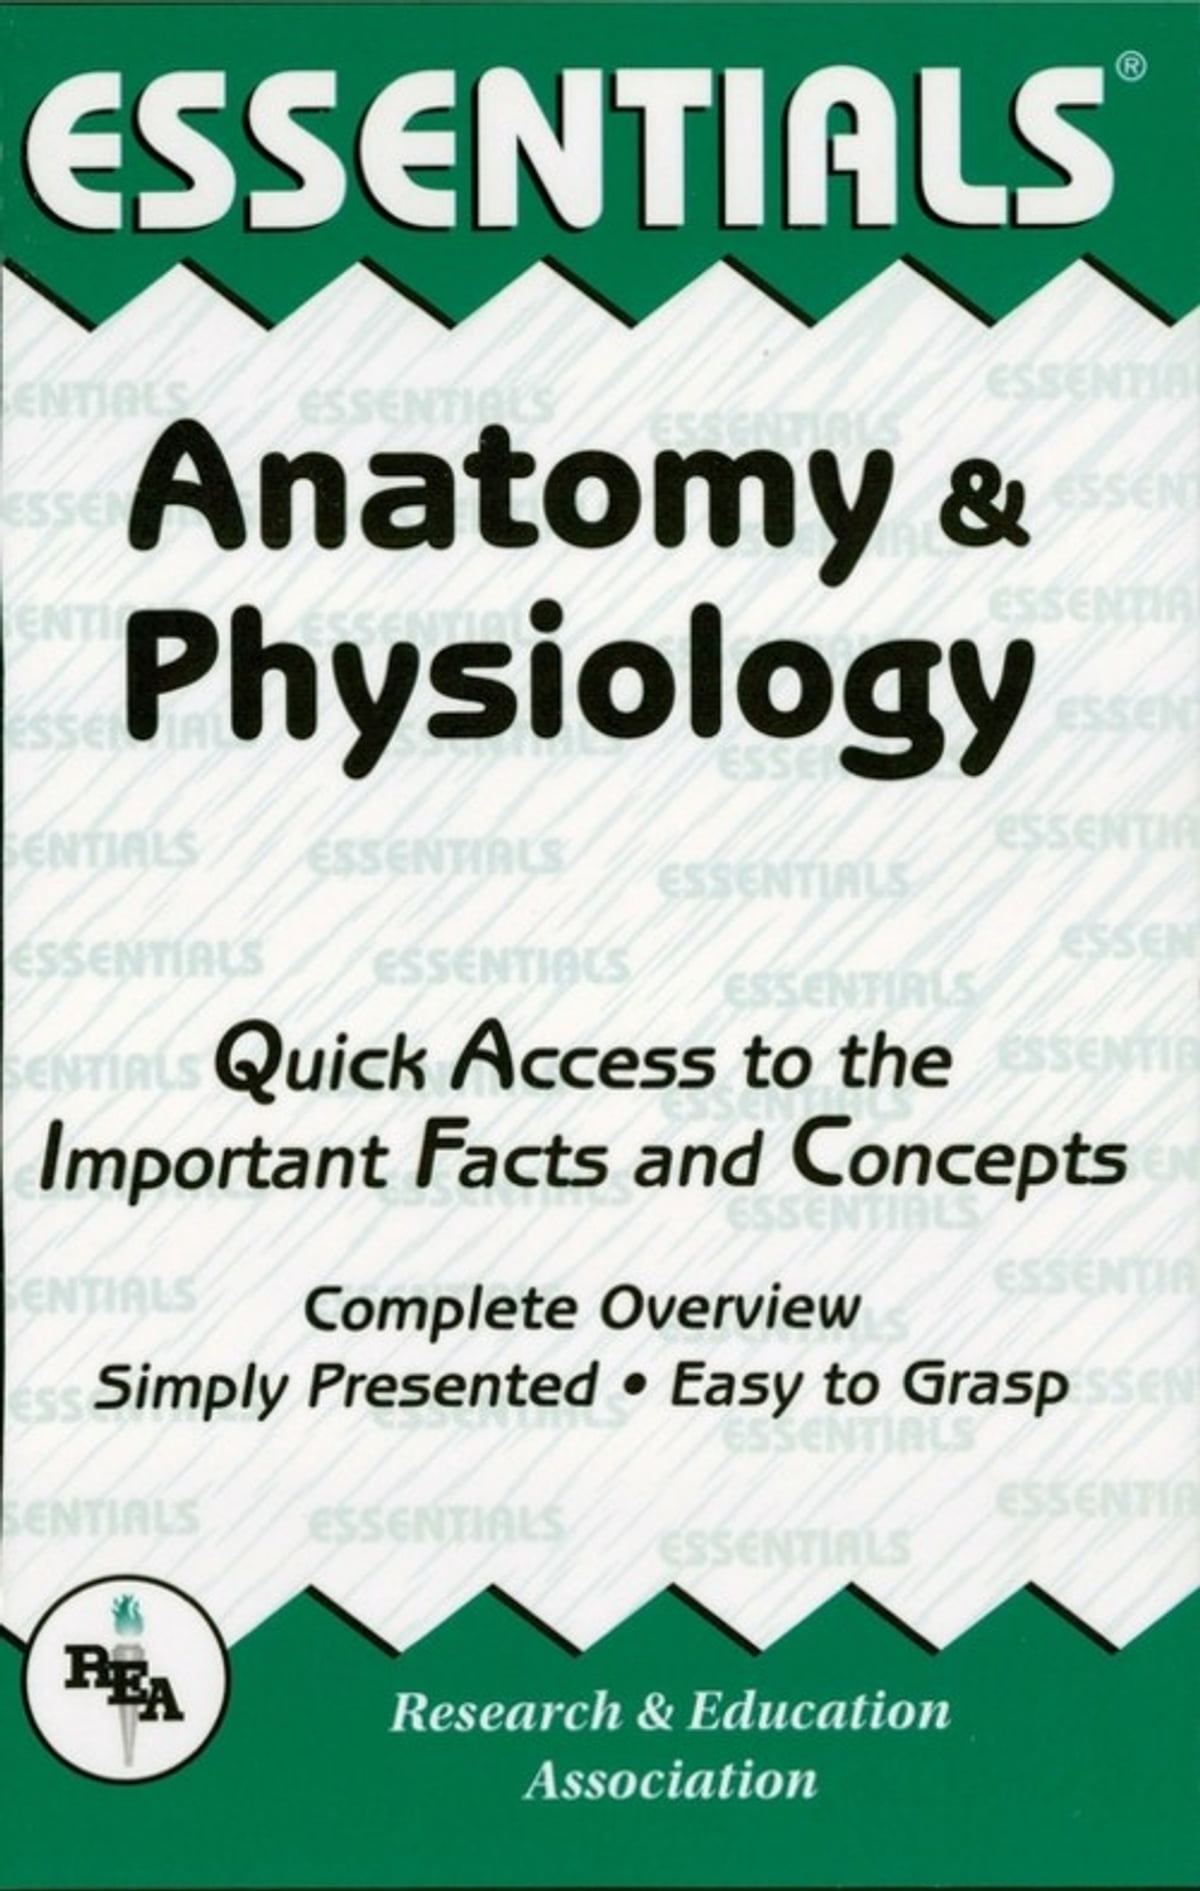 Anatomy and Physiology Essentials eBook by Jay M. Templin ...